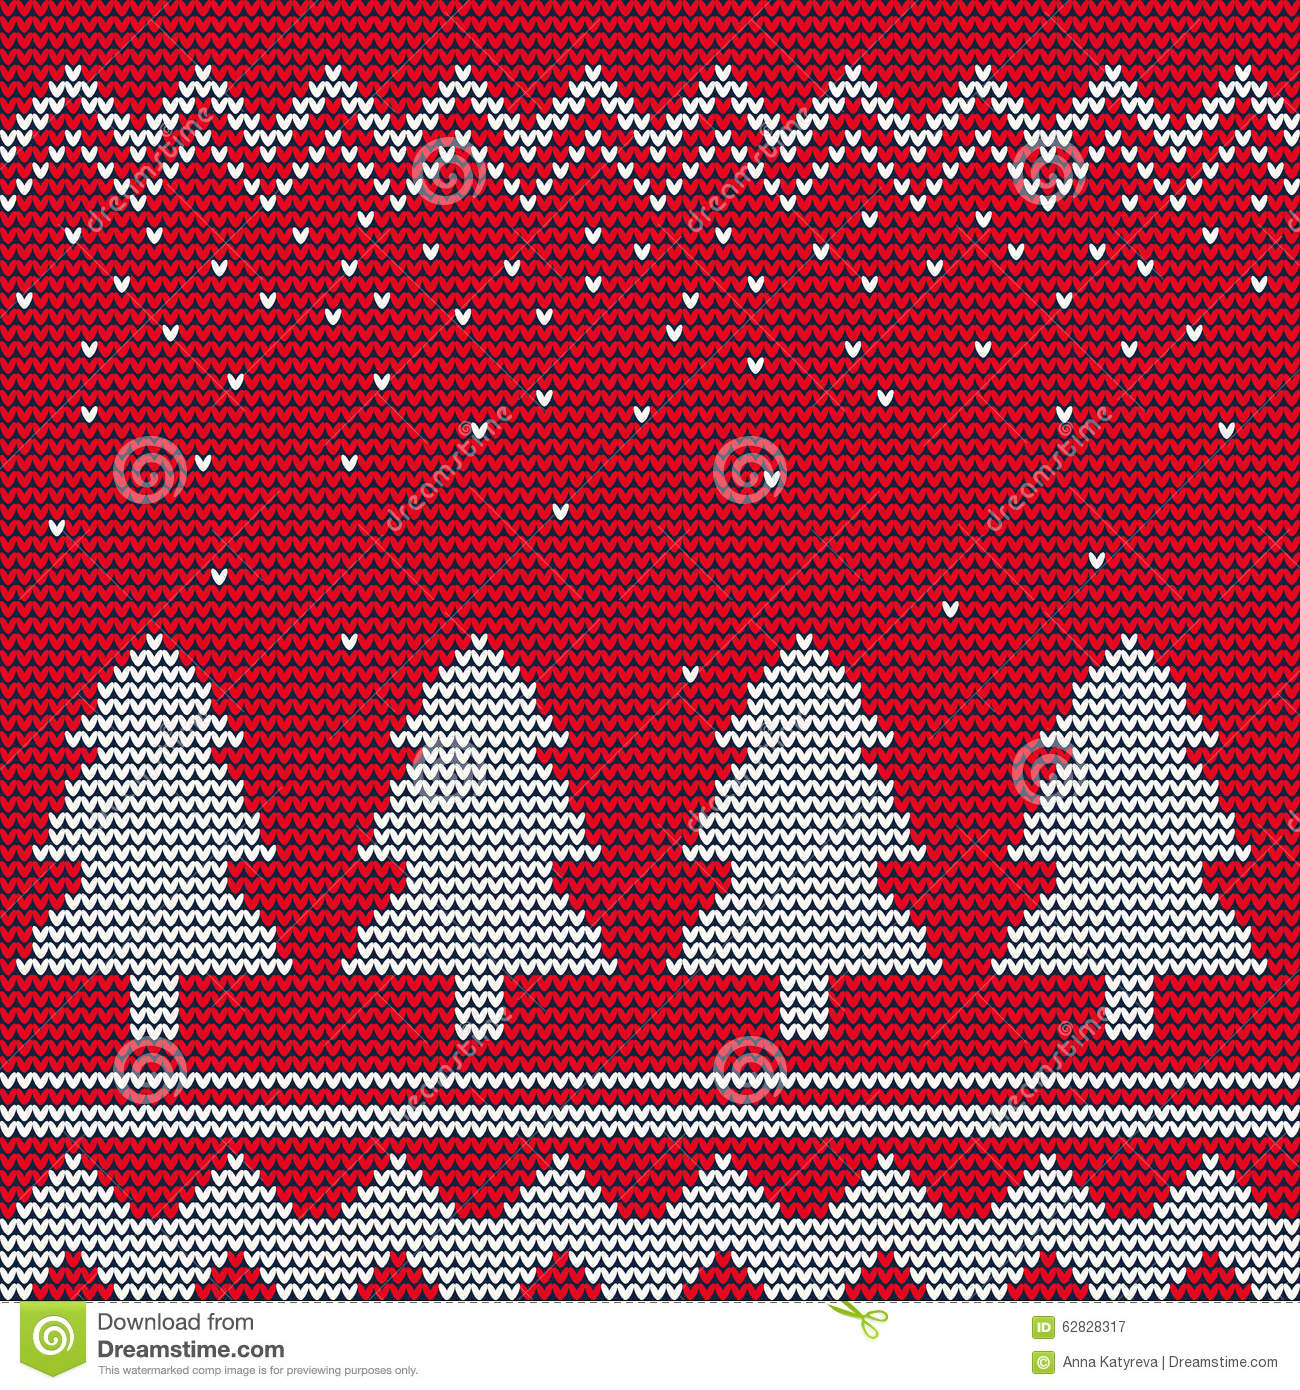 Vector Illustration Web Designs: Christmas Ugly Sweater 1 Stock Vector